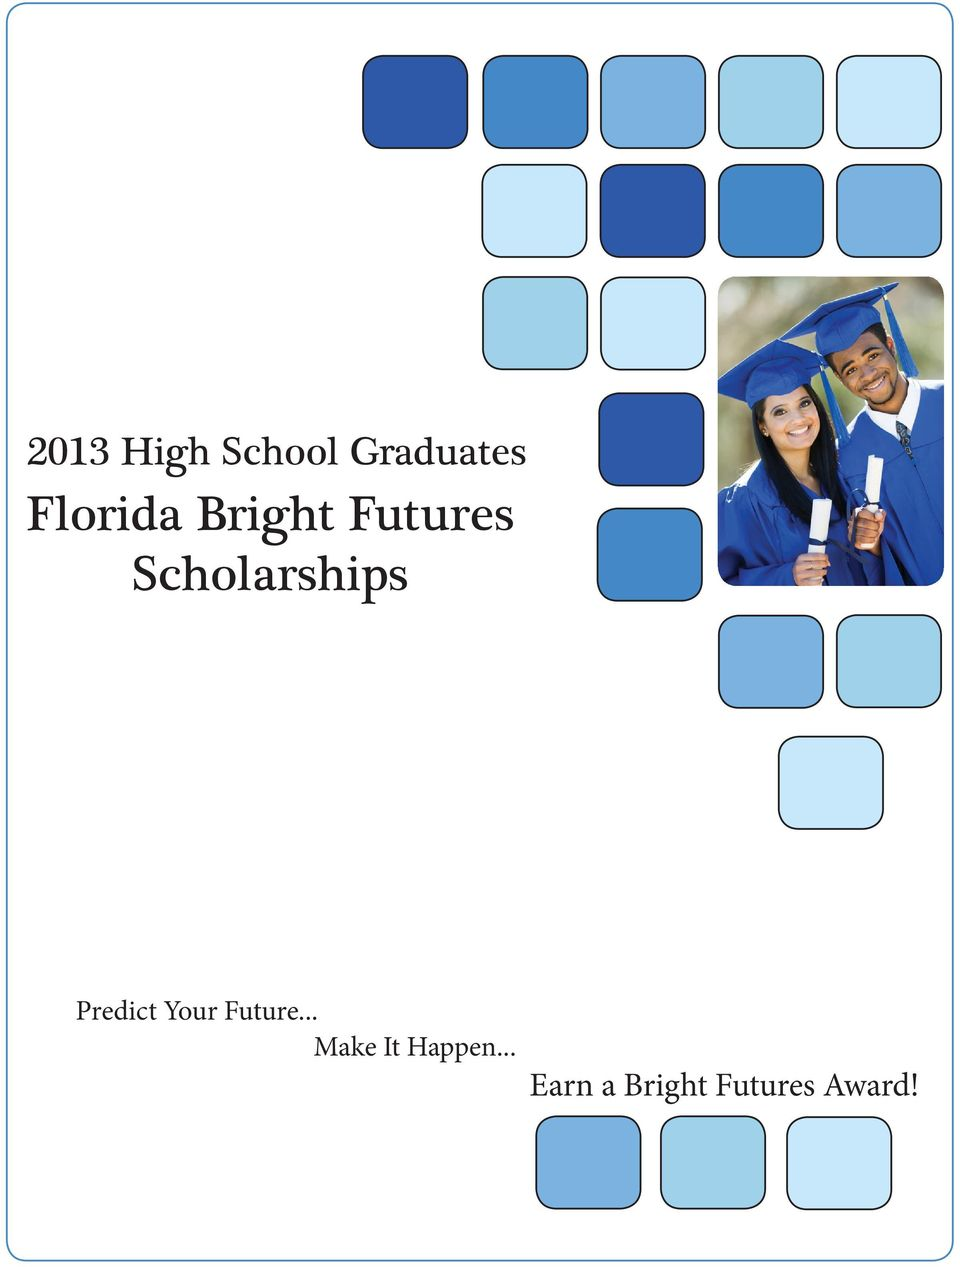 Scholarships Predict Your Future.